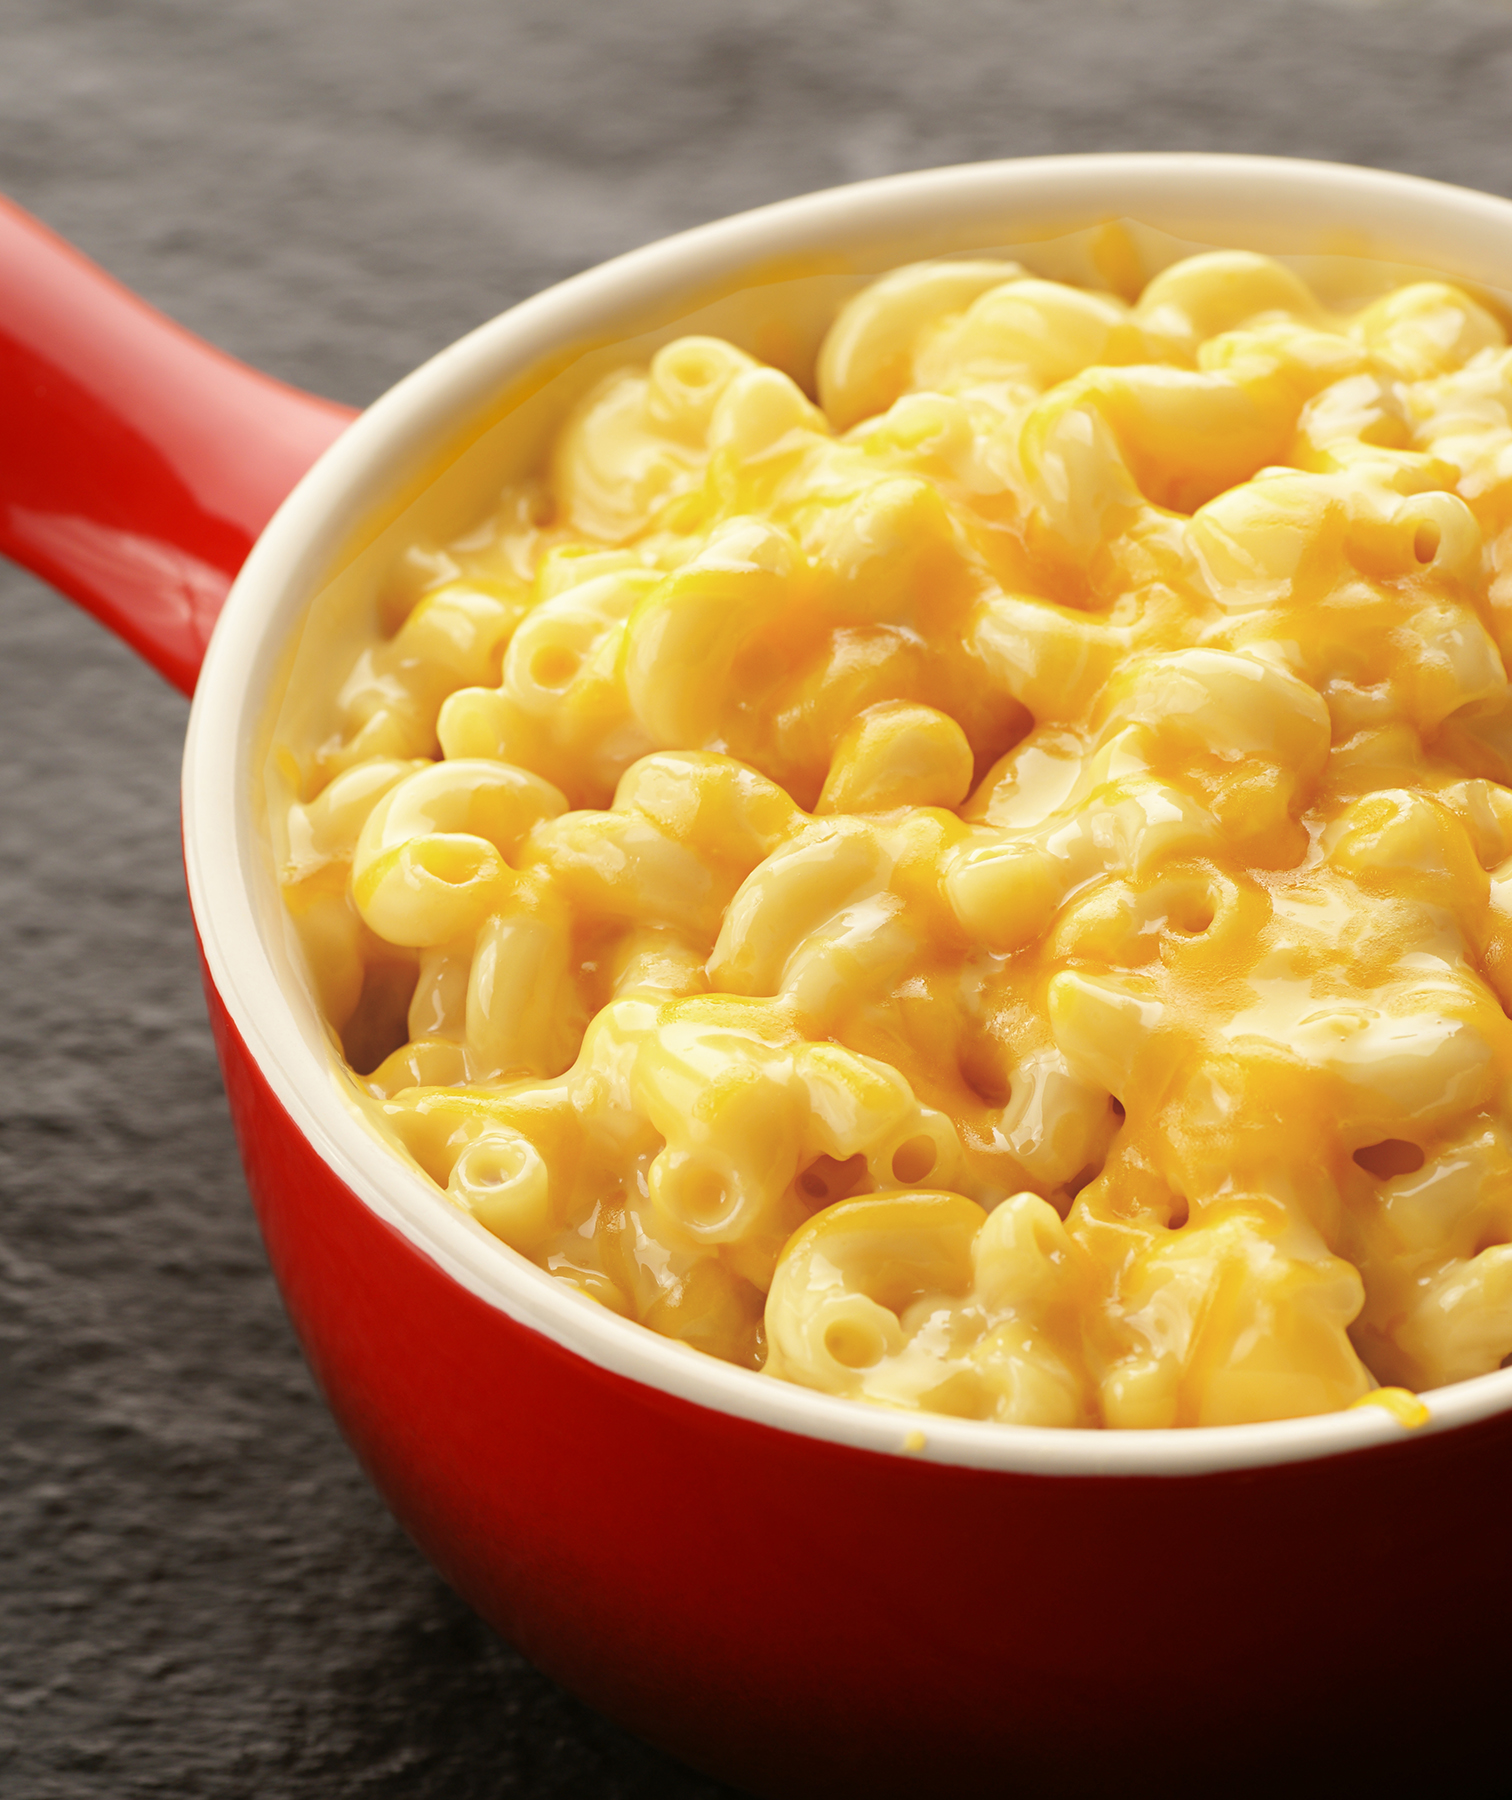 Macaroni and cheese in red pot